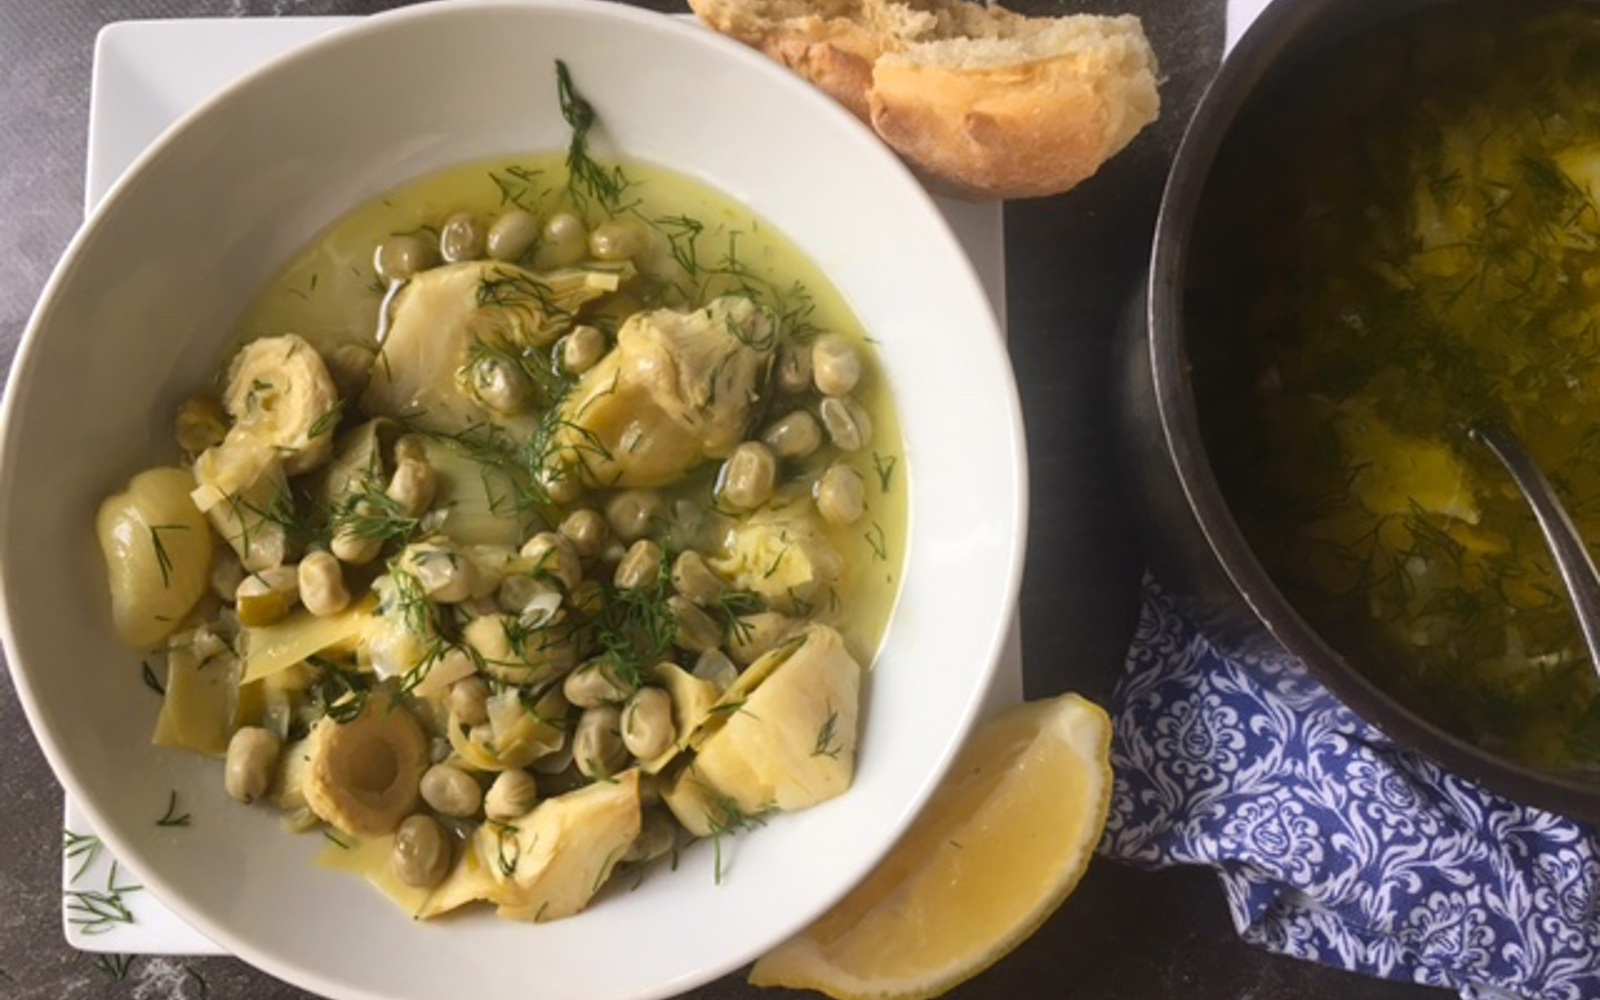 Vegan Grain-Free Stewed Artichokes with Fava Beans topped with dill